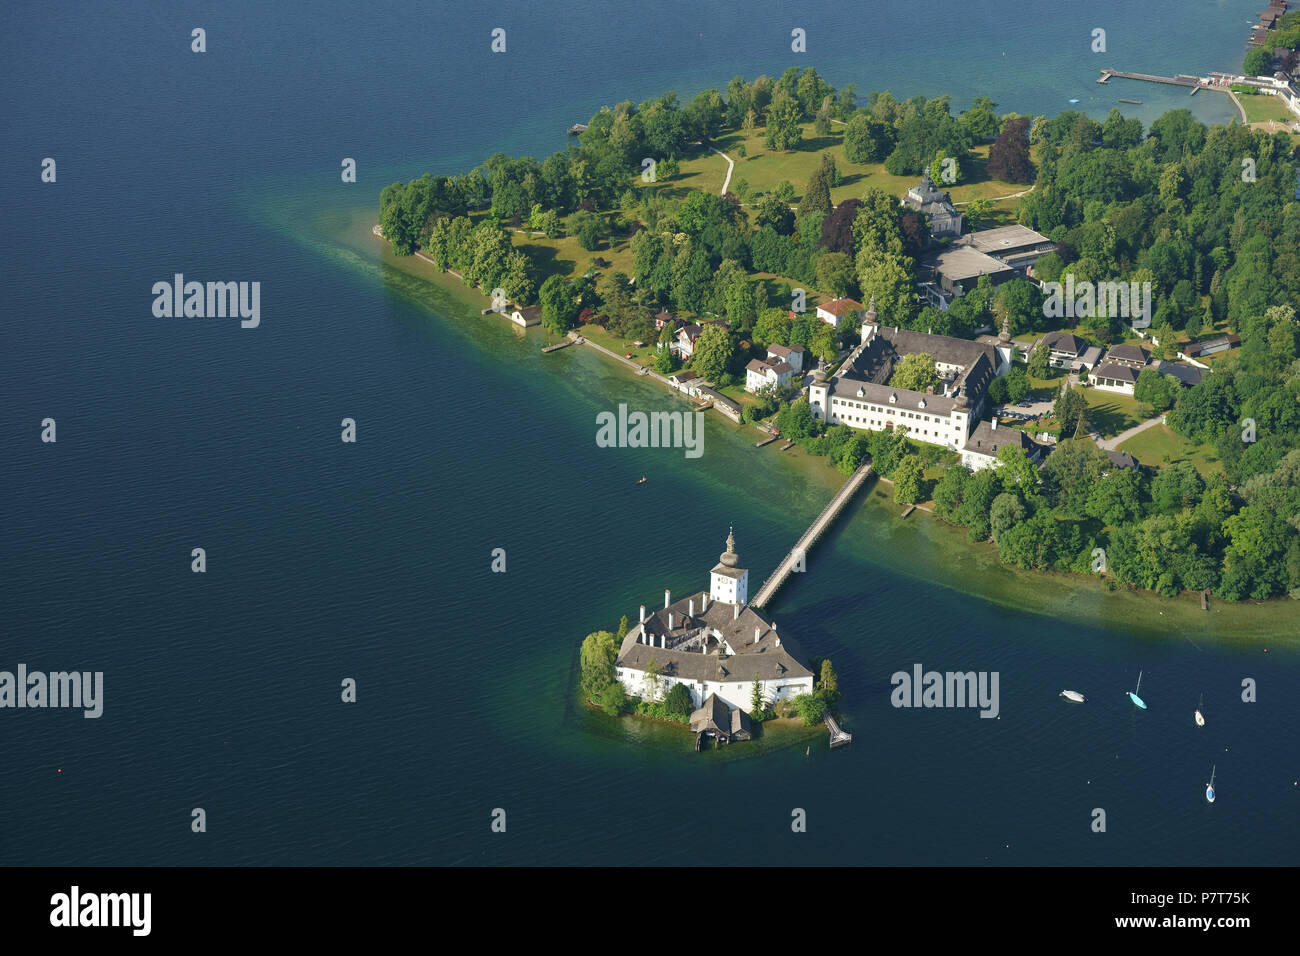 MEDIEVAL CASTLE ON A LAKE WITH A FOOTBRIDGE FOR ACCESS (aerial view). Ort Castle, Gmunden, Traunsee (lake), Upper Austria, Austria. - Stock Image